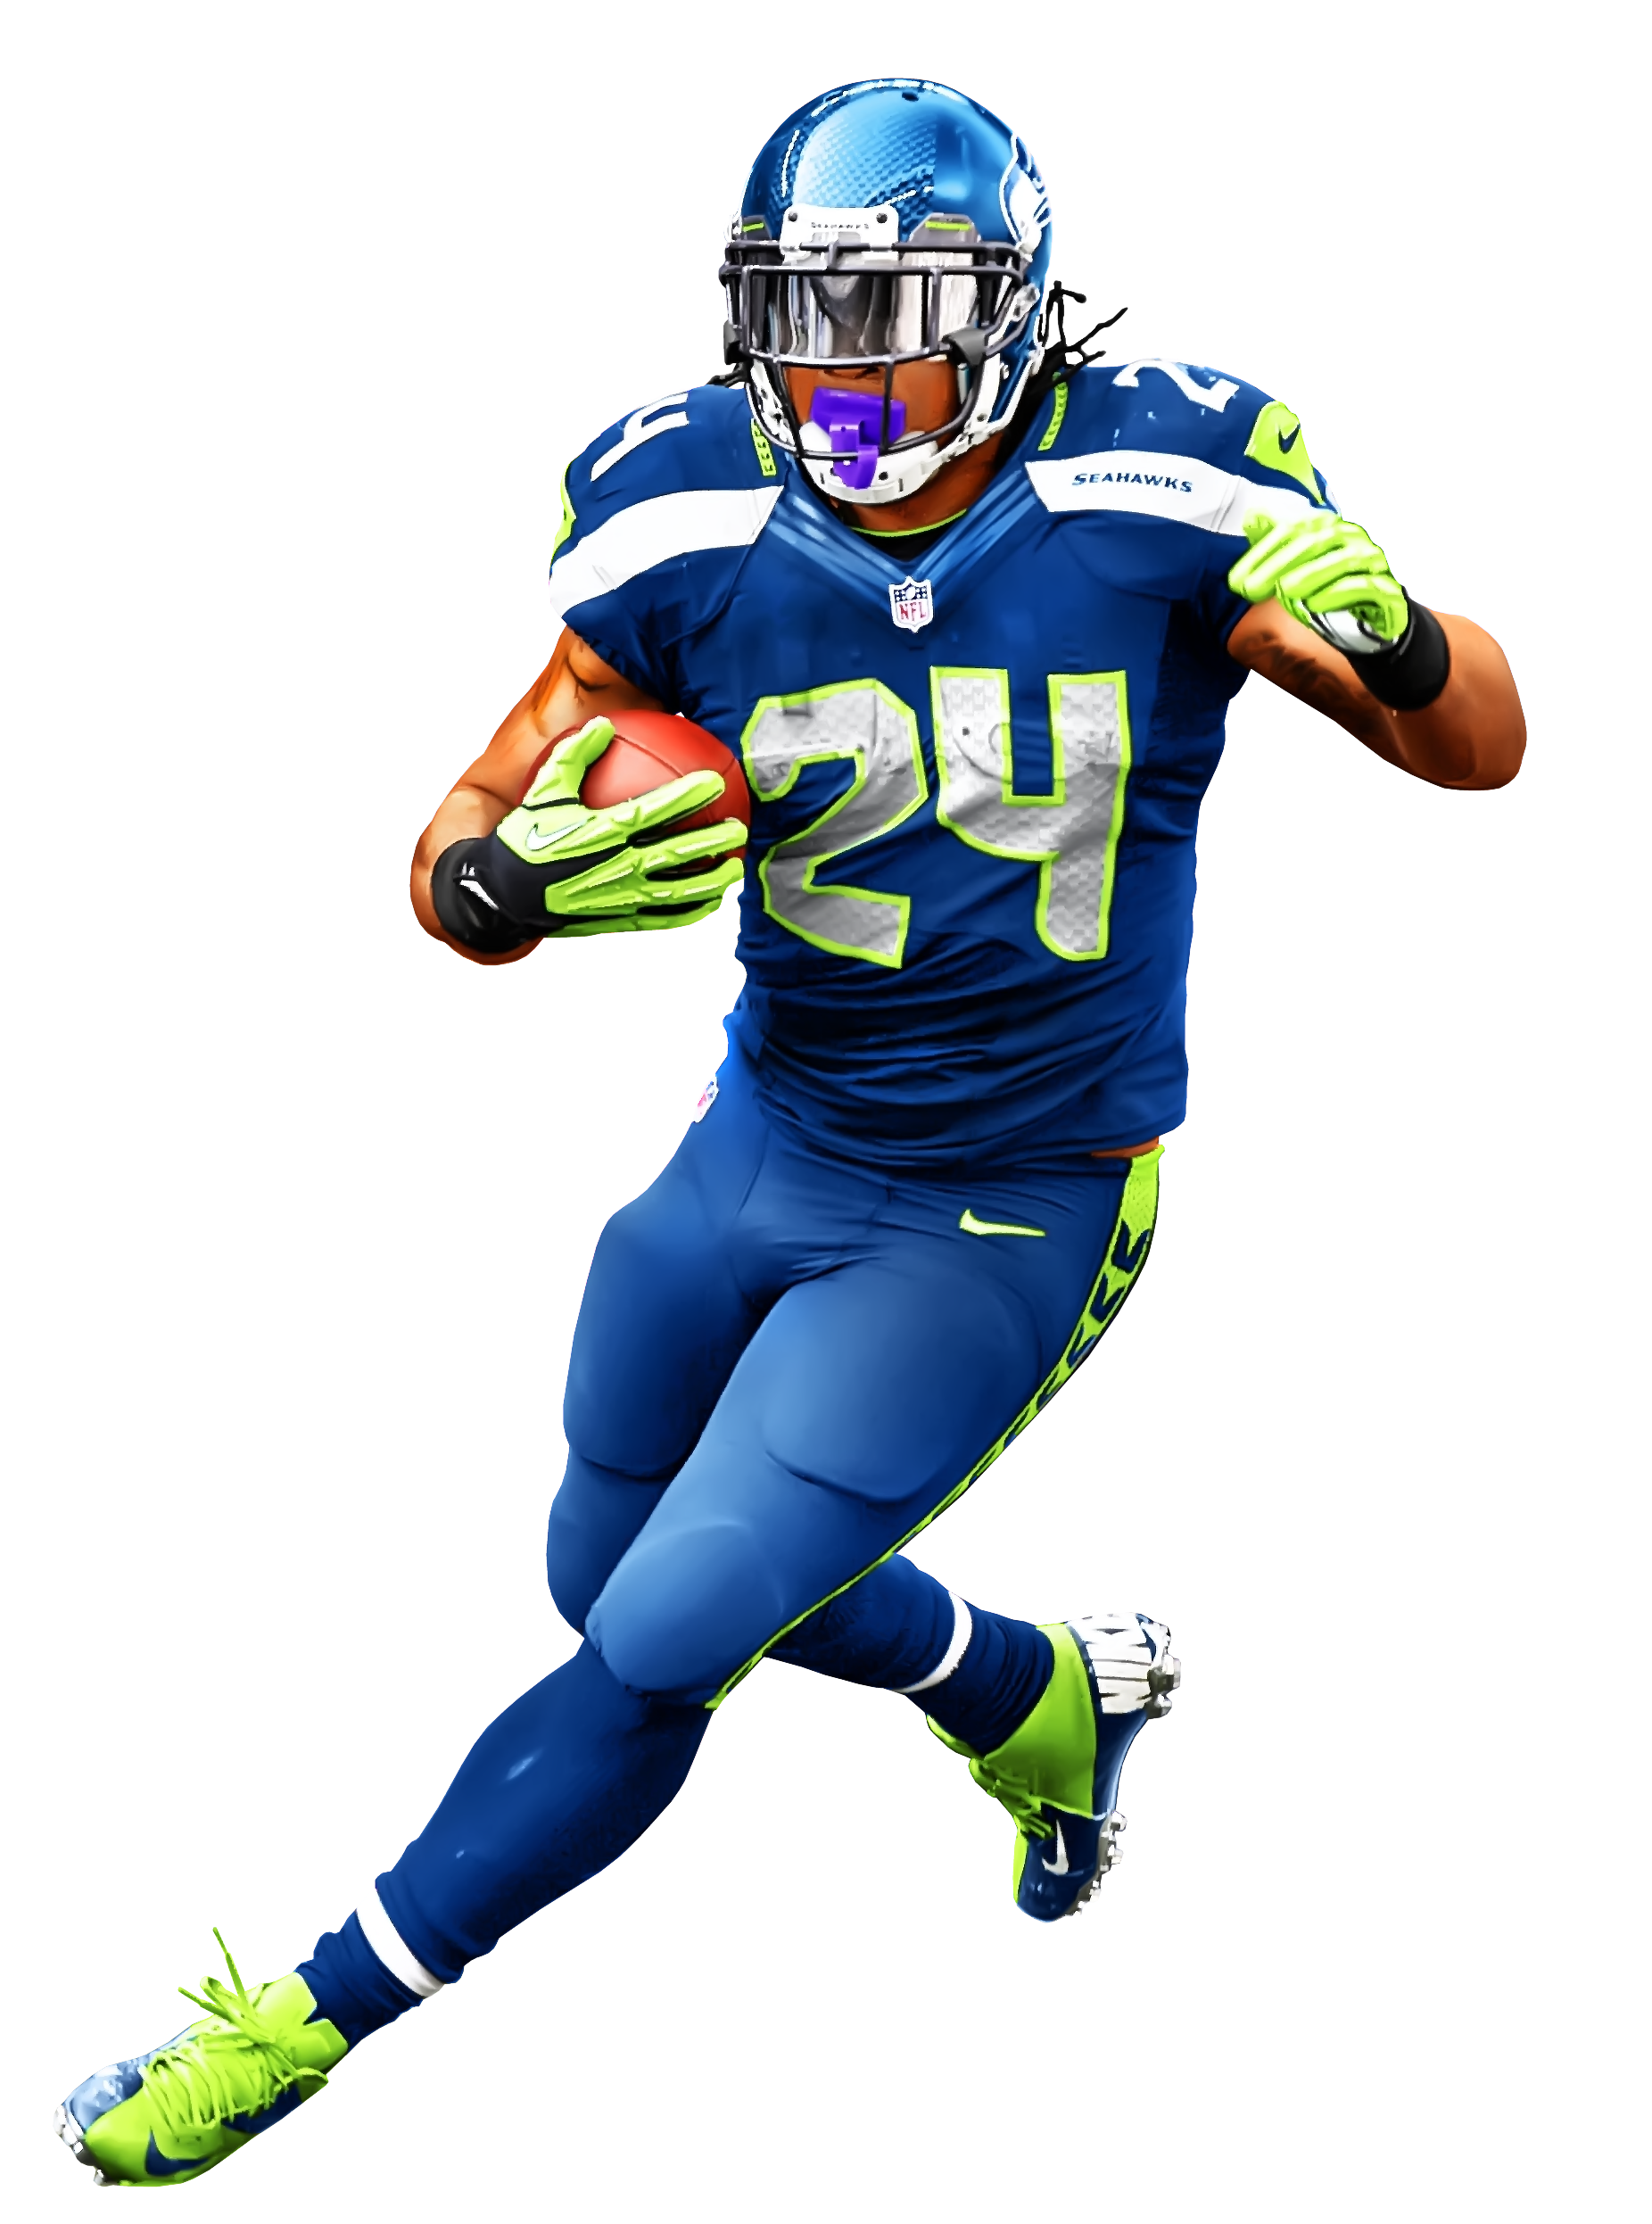 Nfl player transparent png. American football image purepng